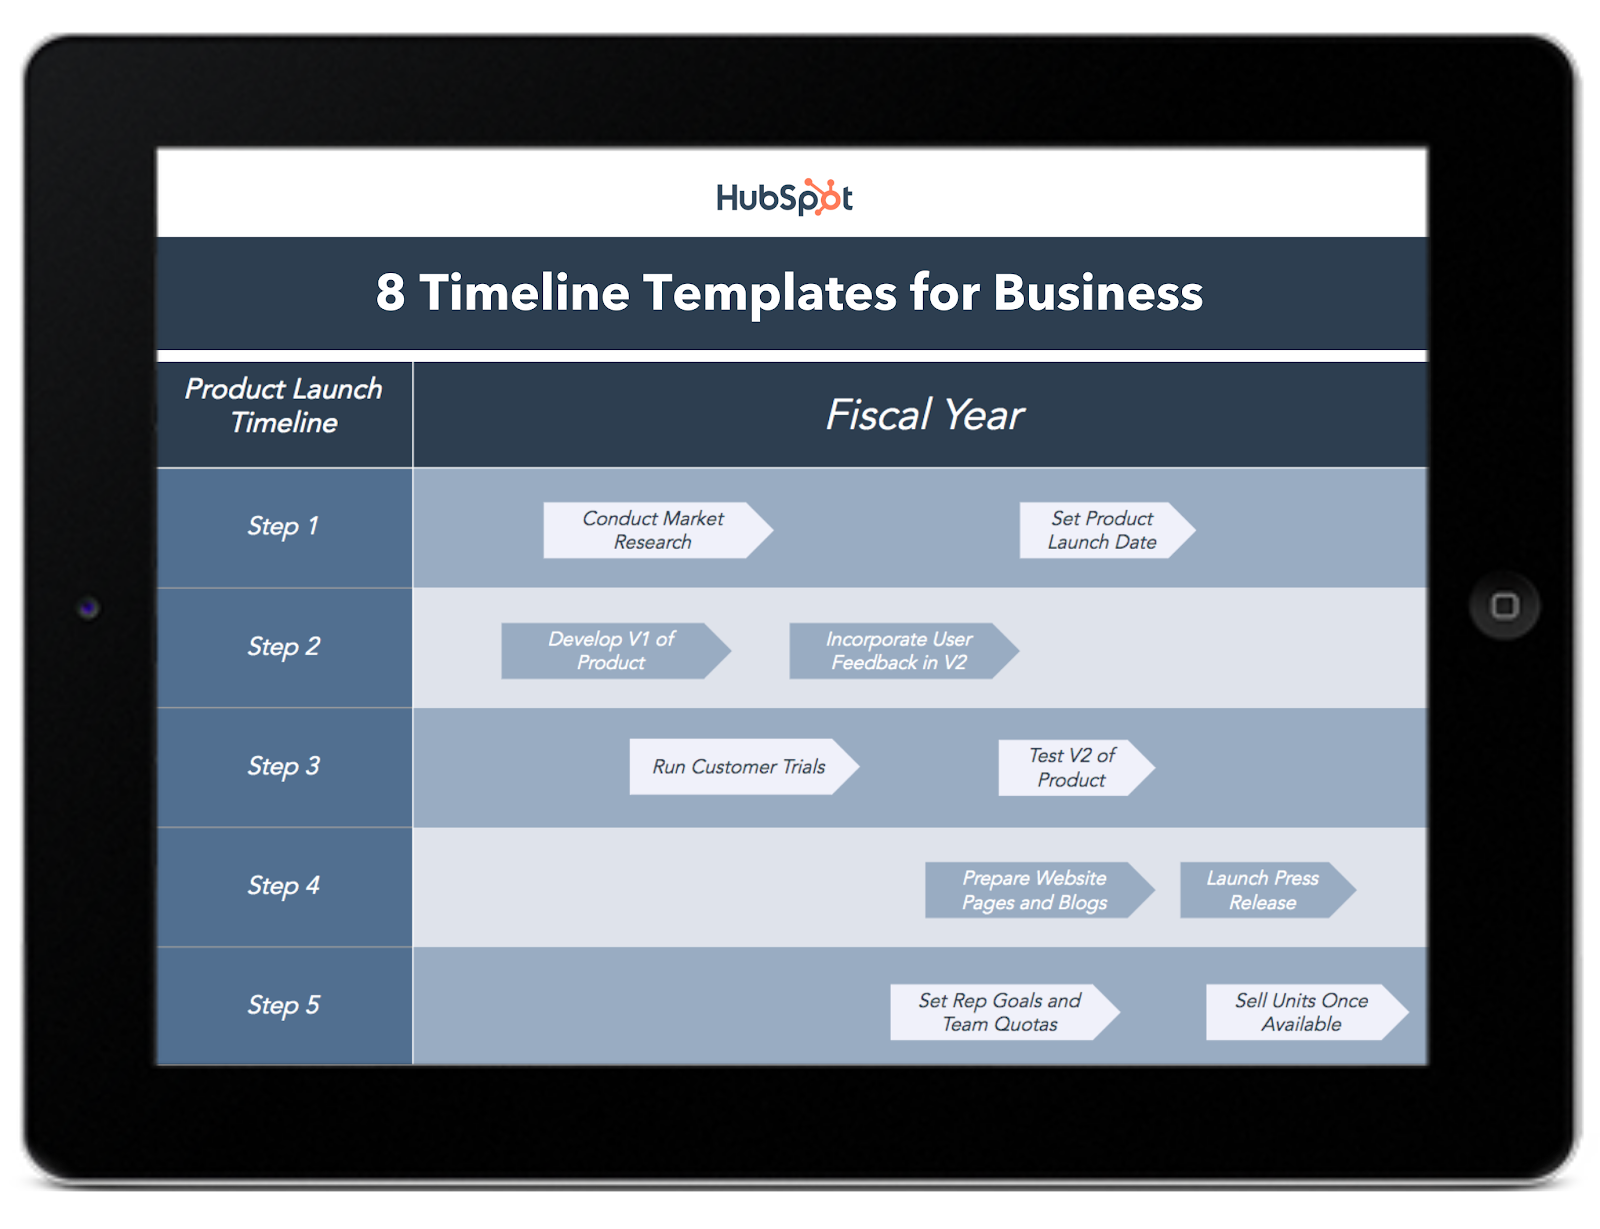 HubSpot timeline infographic templates.